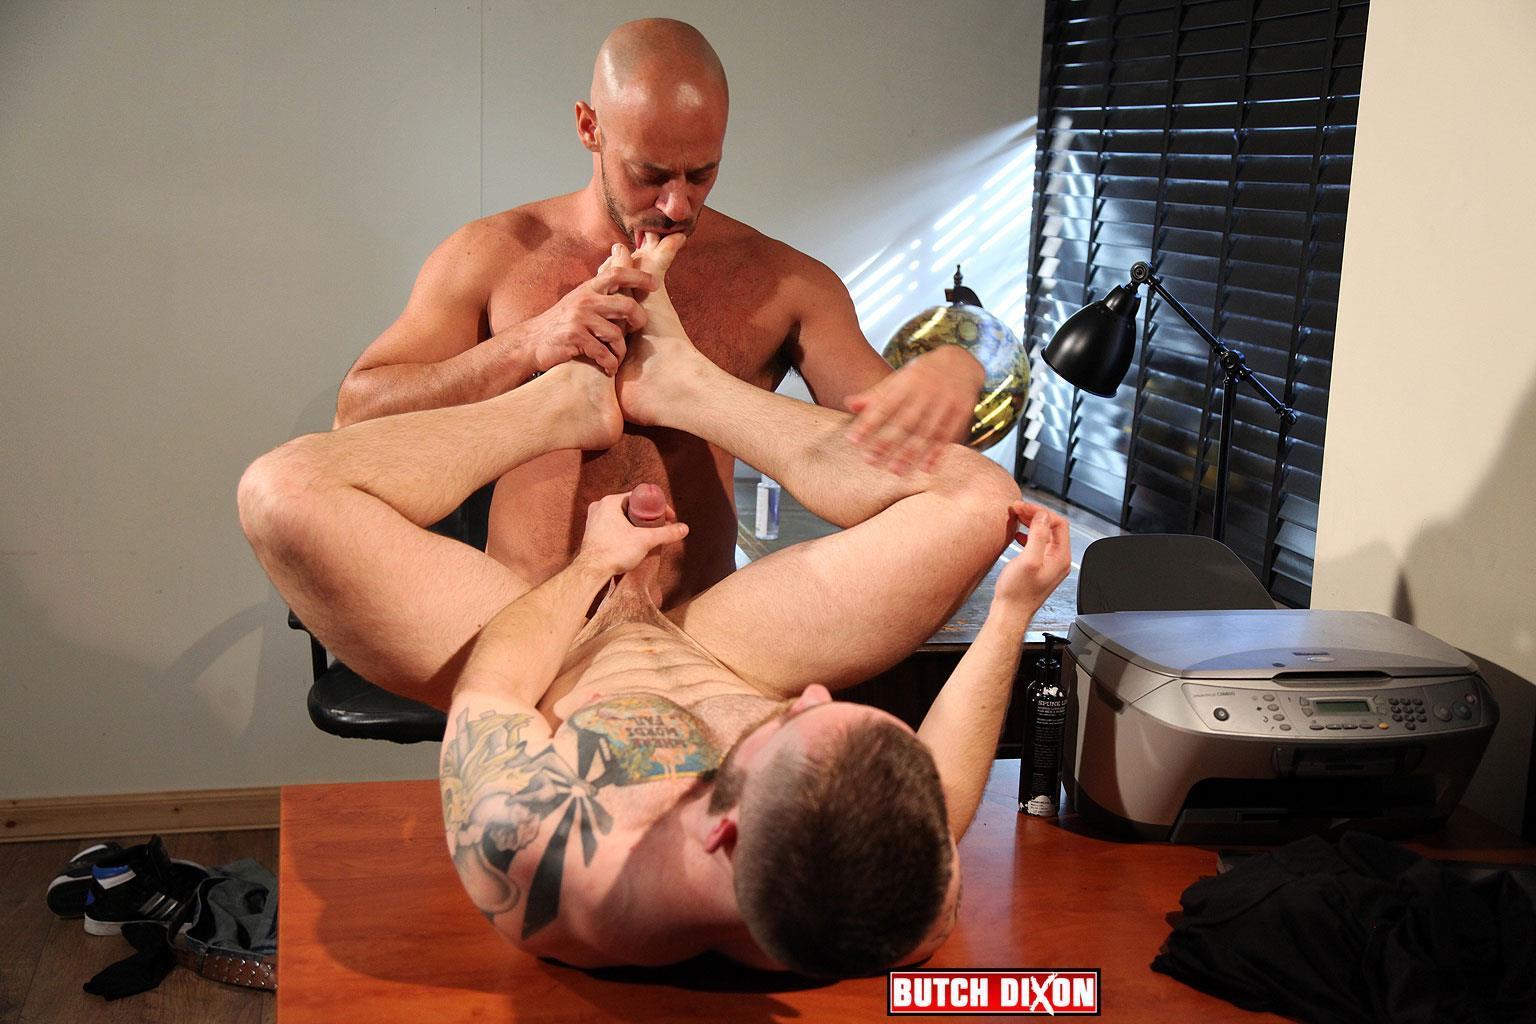 Butch Dixon Alfie Stone and Bruno Fox Big Cock Masculine Gays Fucking Amateur Gay Porn 08 Freaky Amateur Hairy Masculine Men Fucking With Thick Cocks